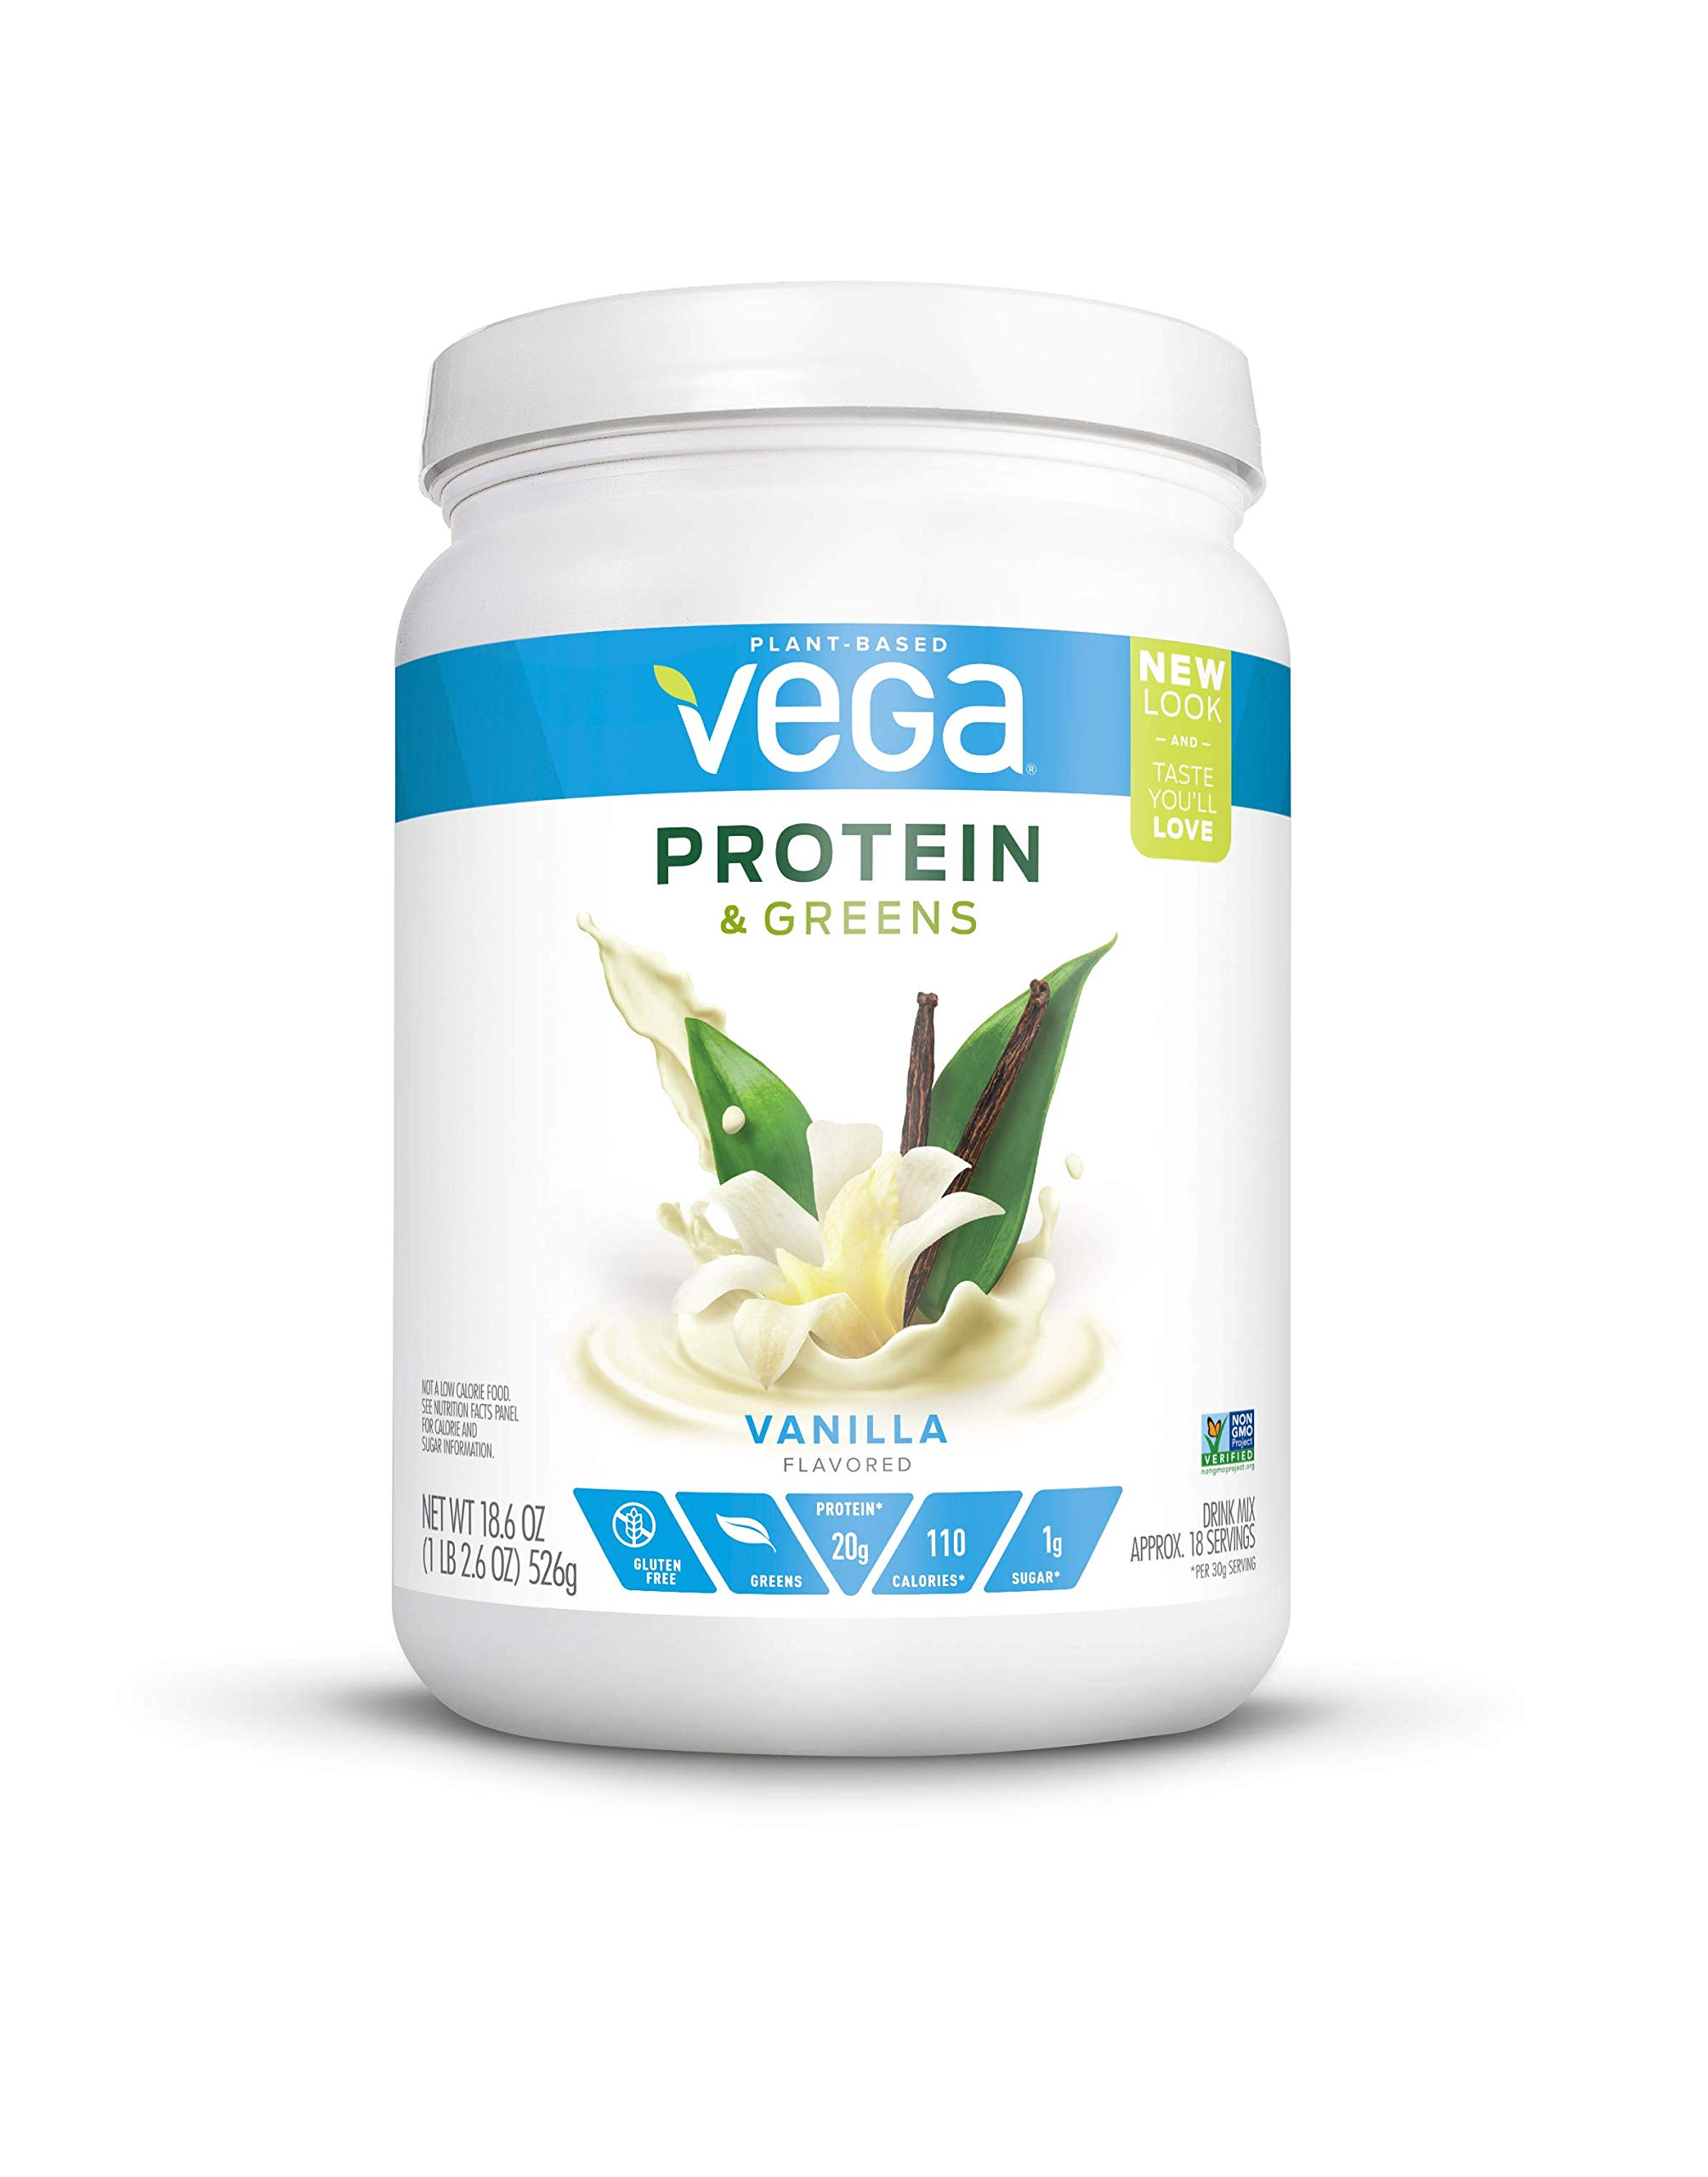 Vega Protein & Greens Vanilla (18 Servings, 18.6 Ounce) - Plant Based Protein Powder, Keto-Friendly, Gluten Free,  Non Dairy, Vegan, Non Soy, Non GMO - (Packaging may vary) by VEGA